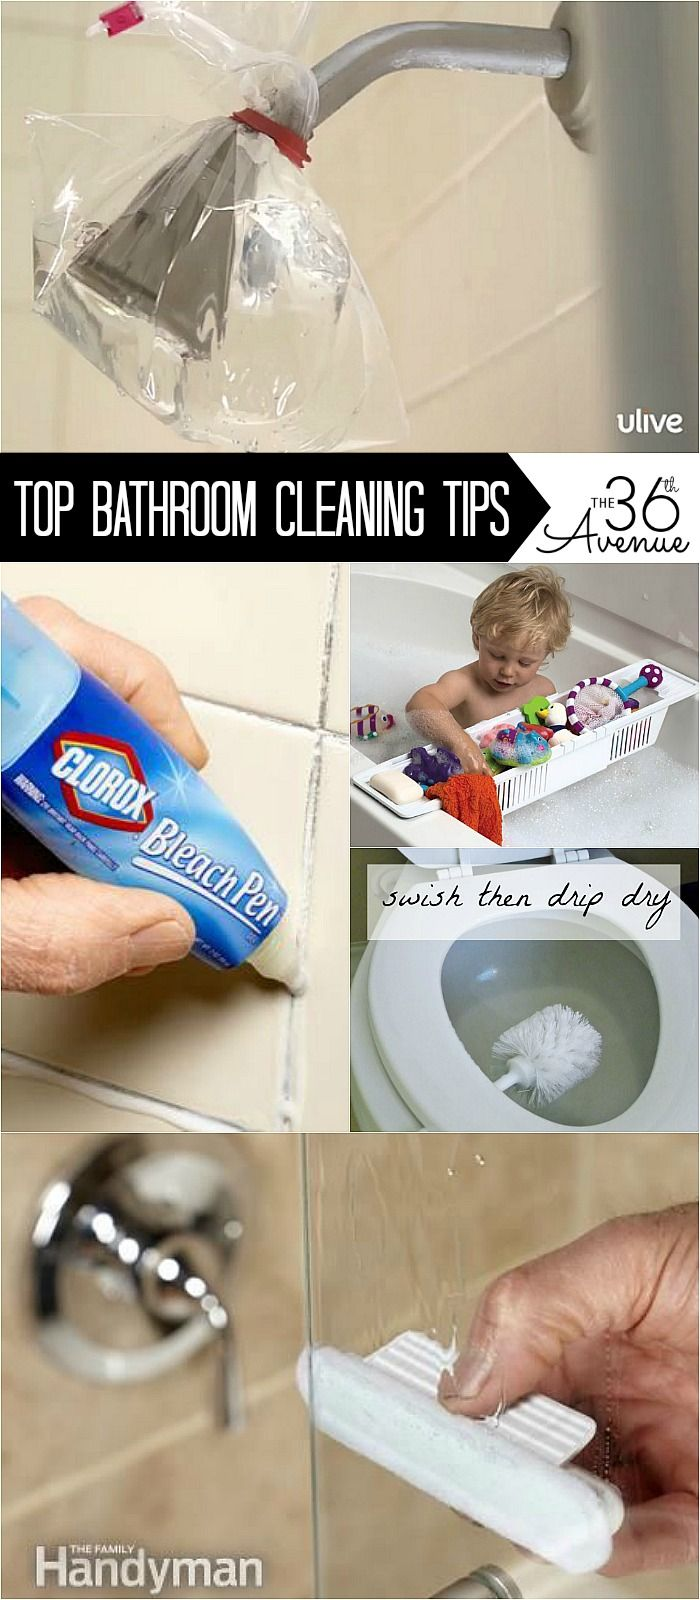 Cleaning Tips : Top 10 Bathroom Cleaning Tips over at the36thavenue.com